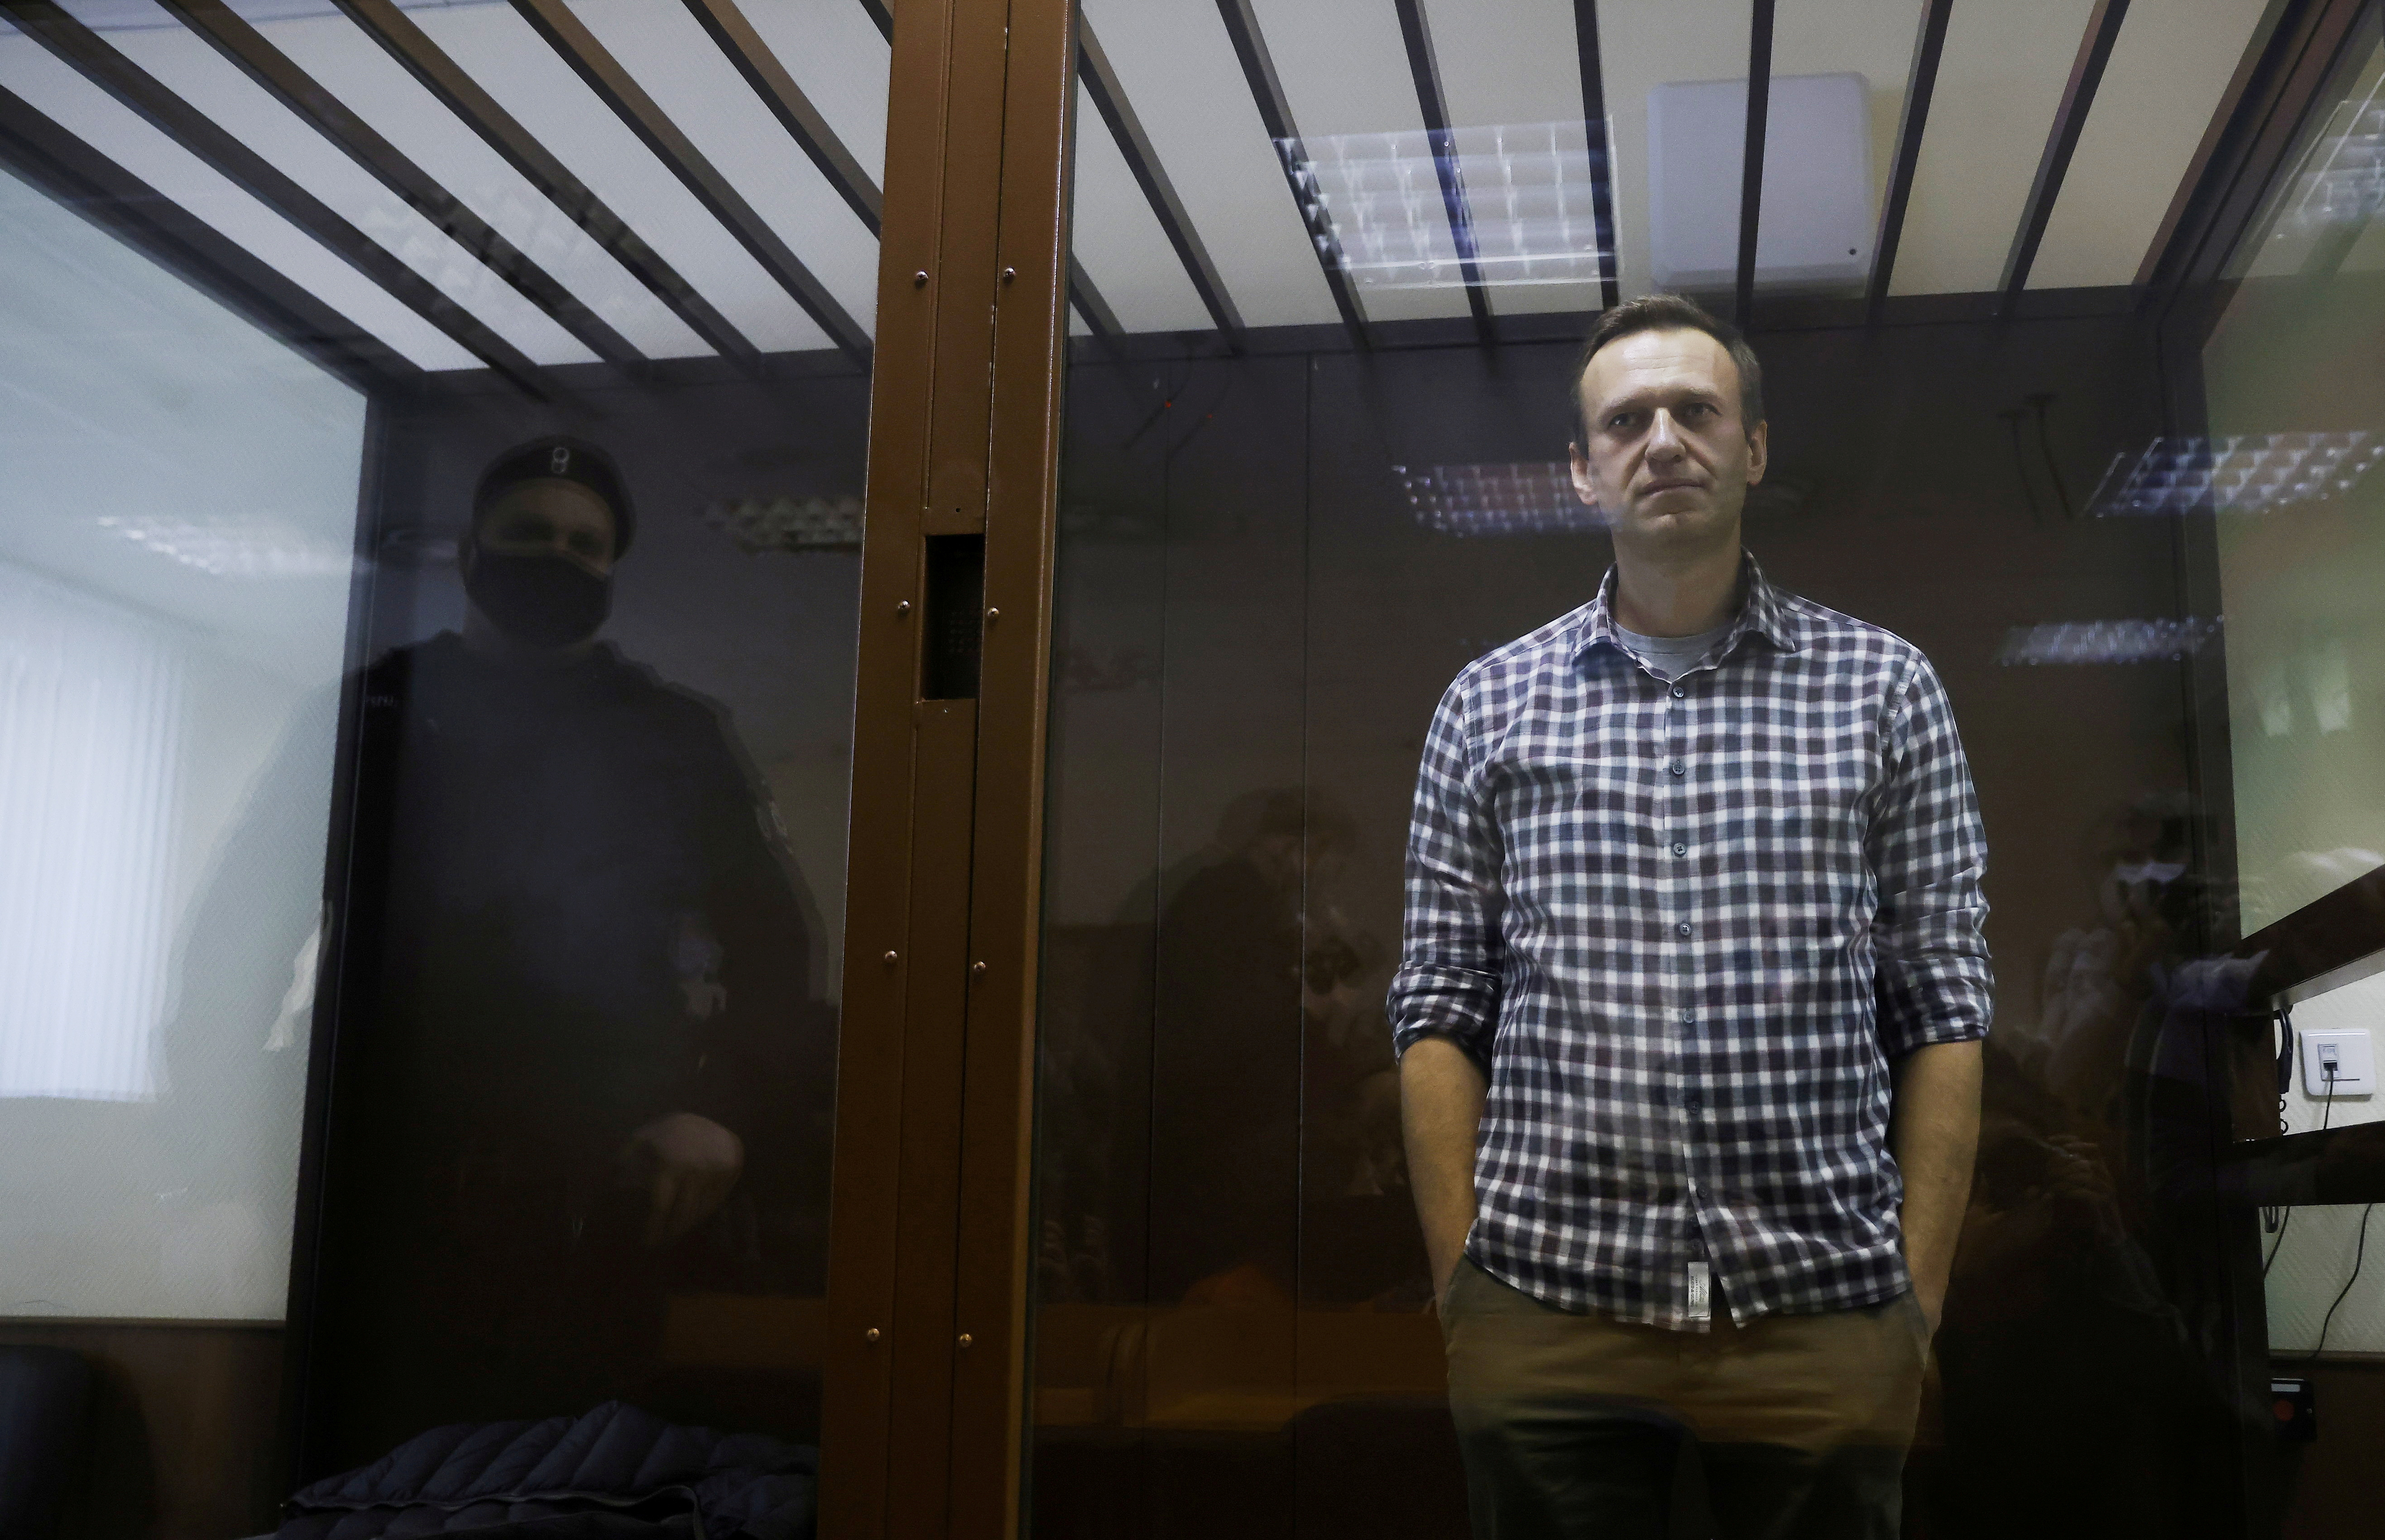 Russian opposition leader Alexei Navalny attends a court hearing in Moscow, Russia February 20, 2021. REUTERS/Maxim Shemetov/File Photo